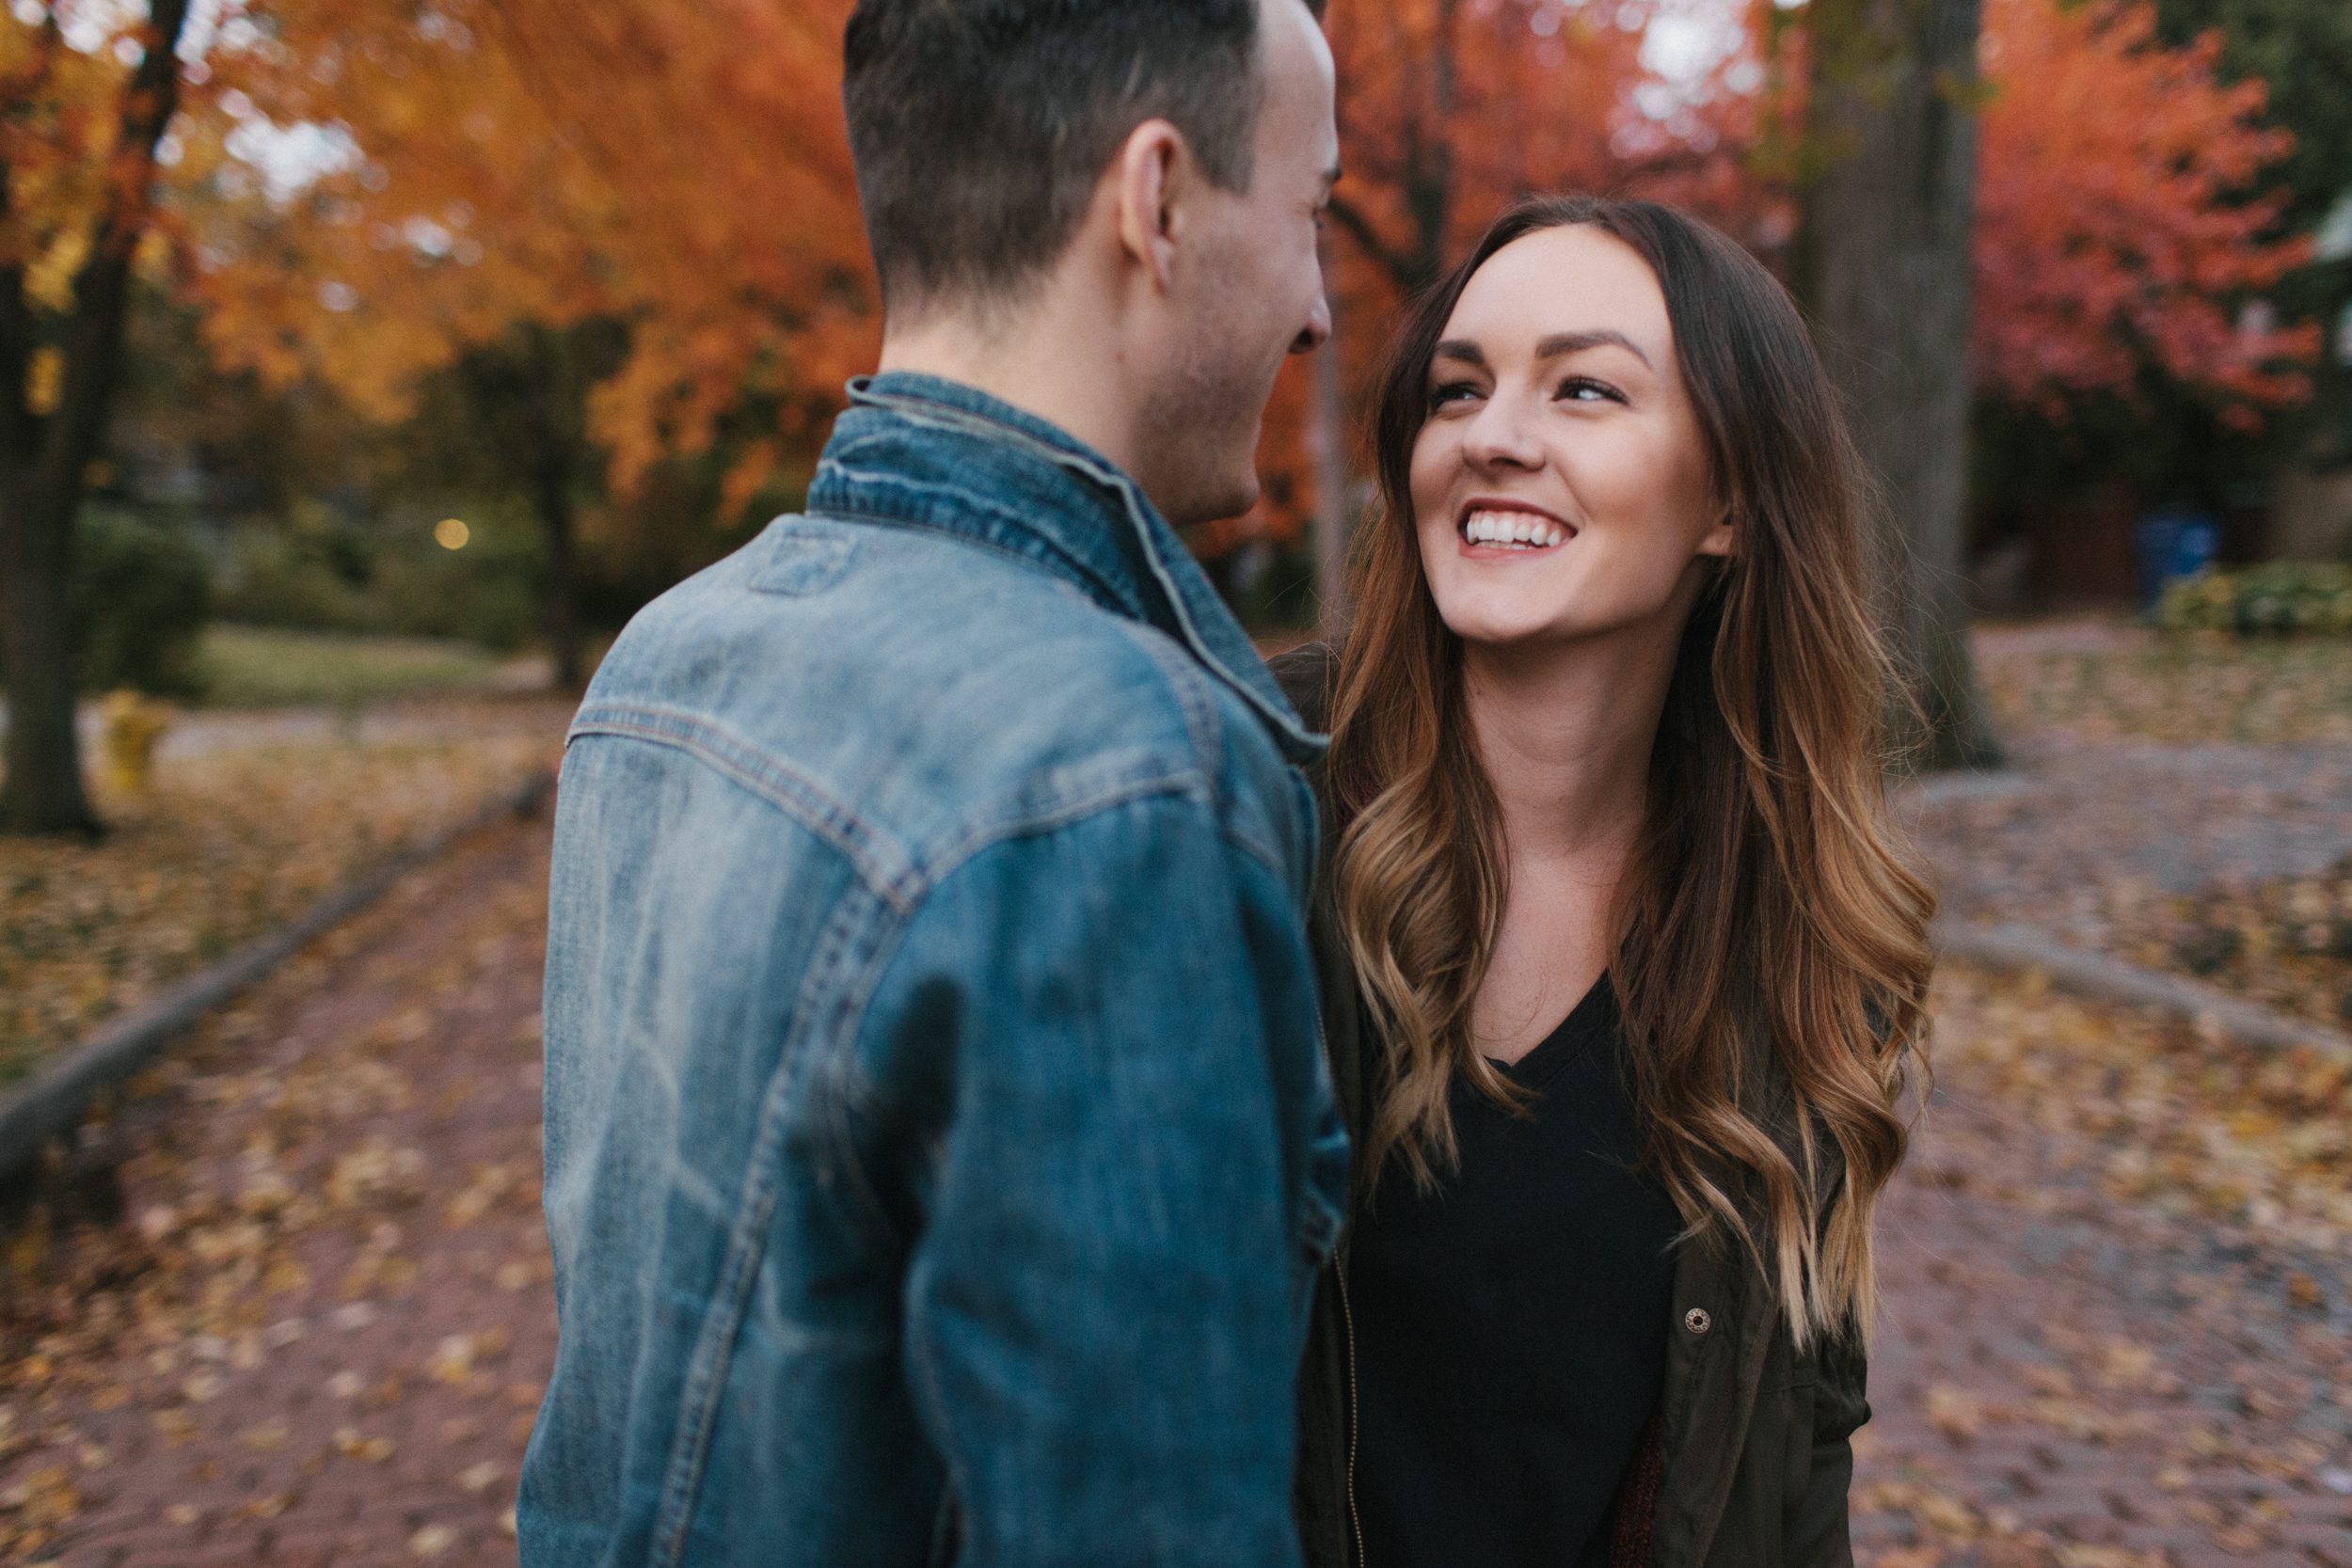 Grand Rapids Engagement photos Lifestyle Wedding Photographer Mae Stier Autumn Fall Candid Photography-007.jpg